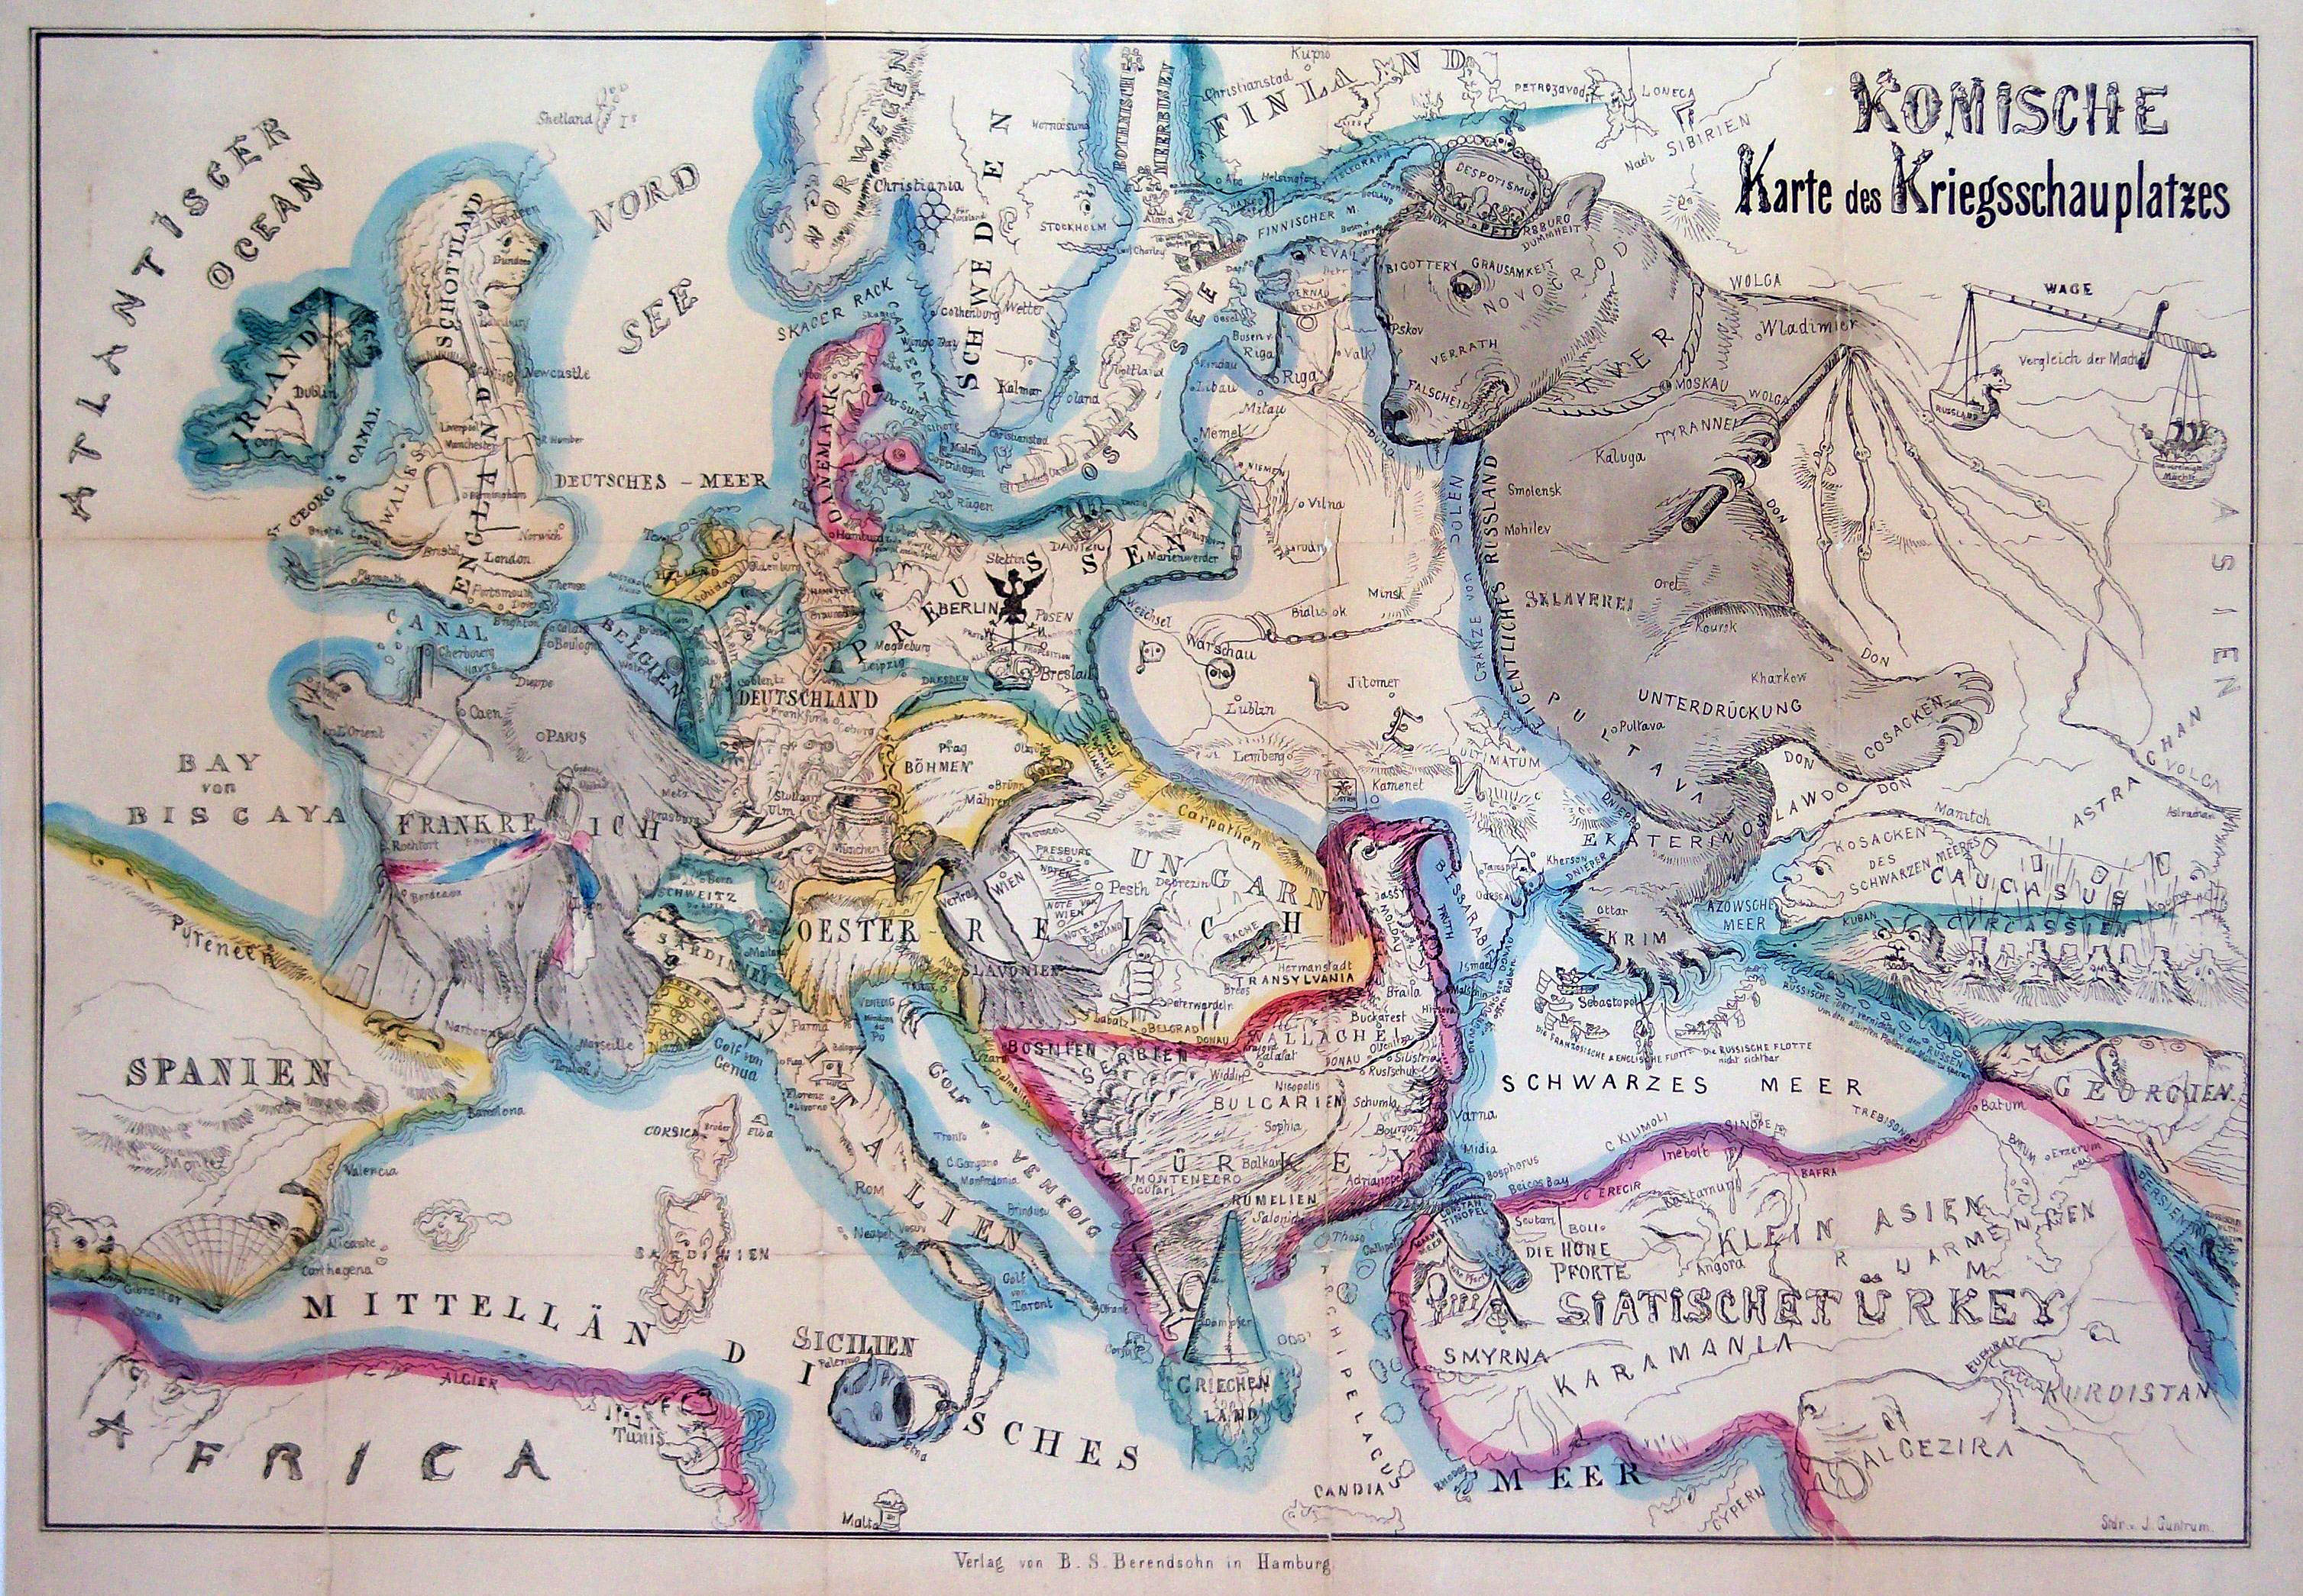 Bringing The Map To Life European Satirical Maps 1845 1945